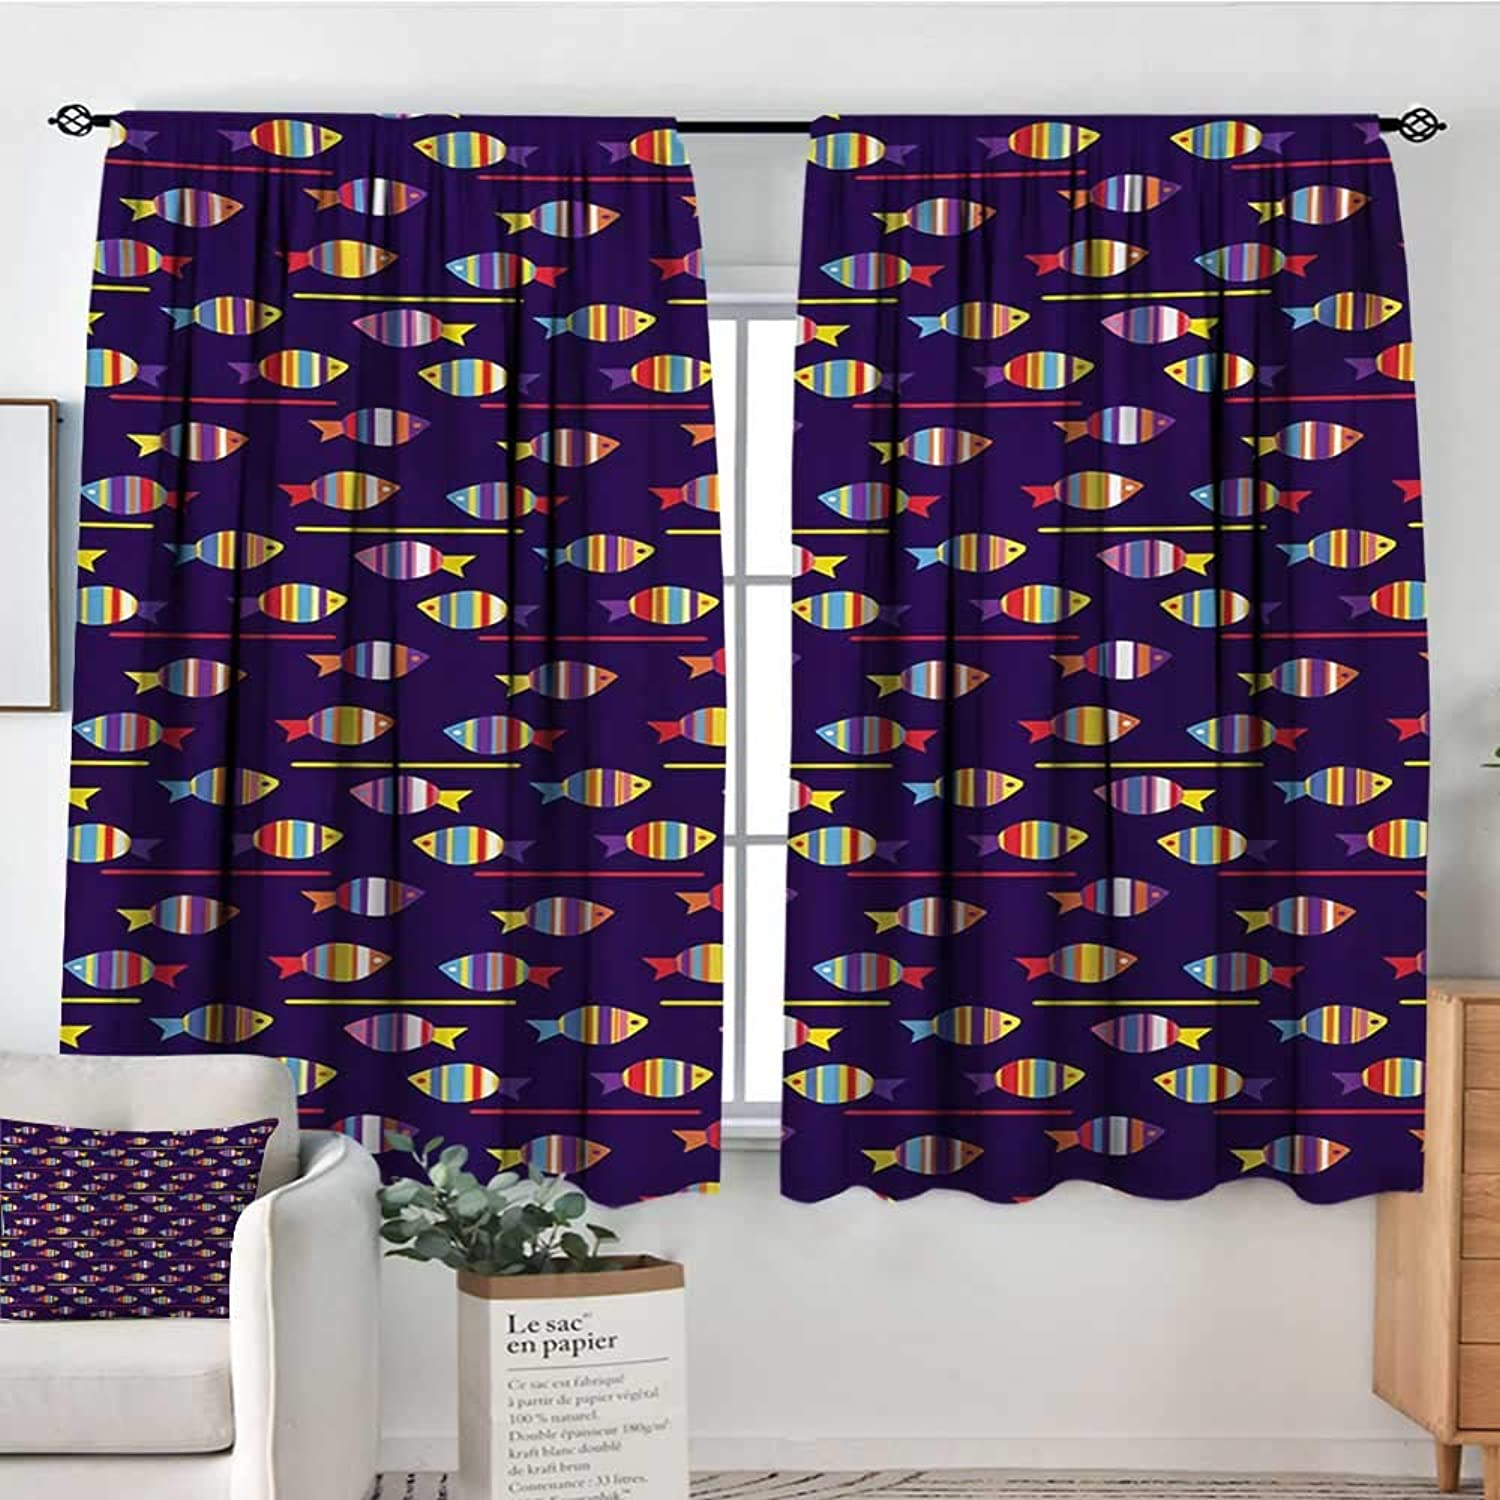 Fish Patterned Drape for Glass Door Rainbow Patterned Aquatic Creatures Silhouettes and Stripes Marine Fauna Aquarium Waterproof Window Curtain 55  W x 45  L Multicolor